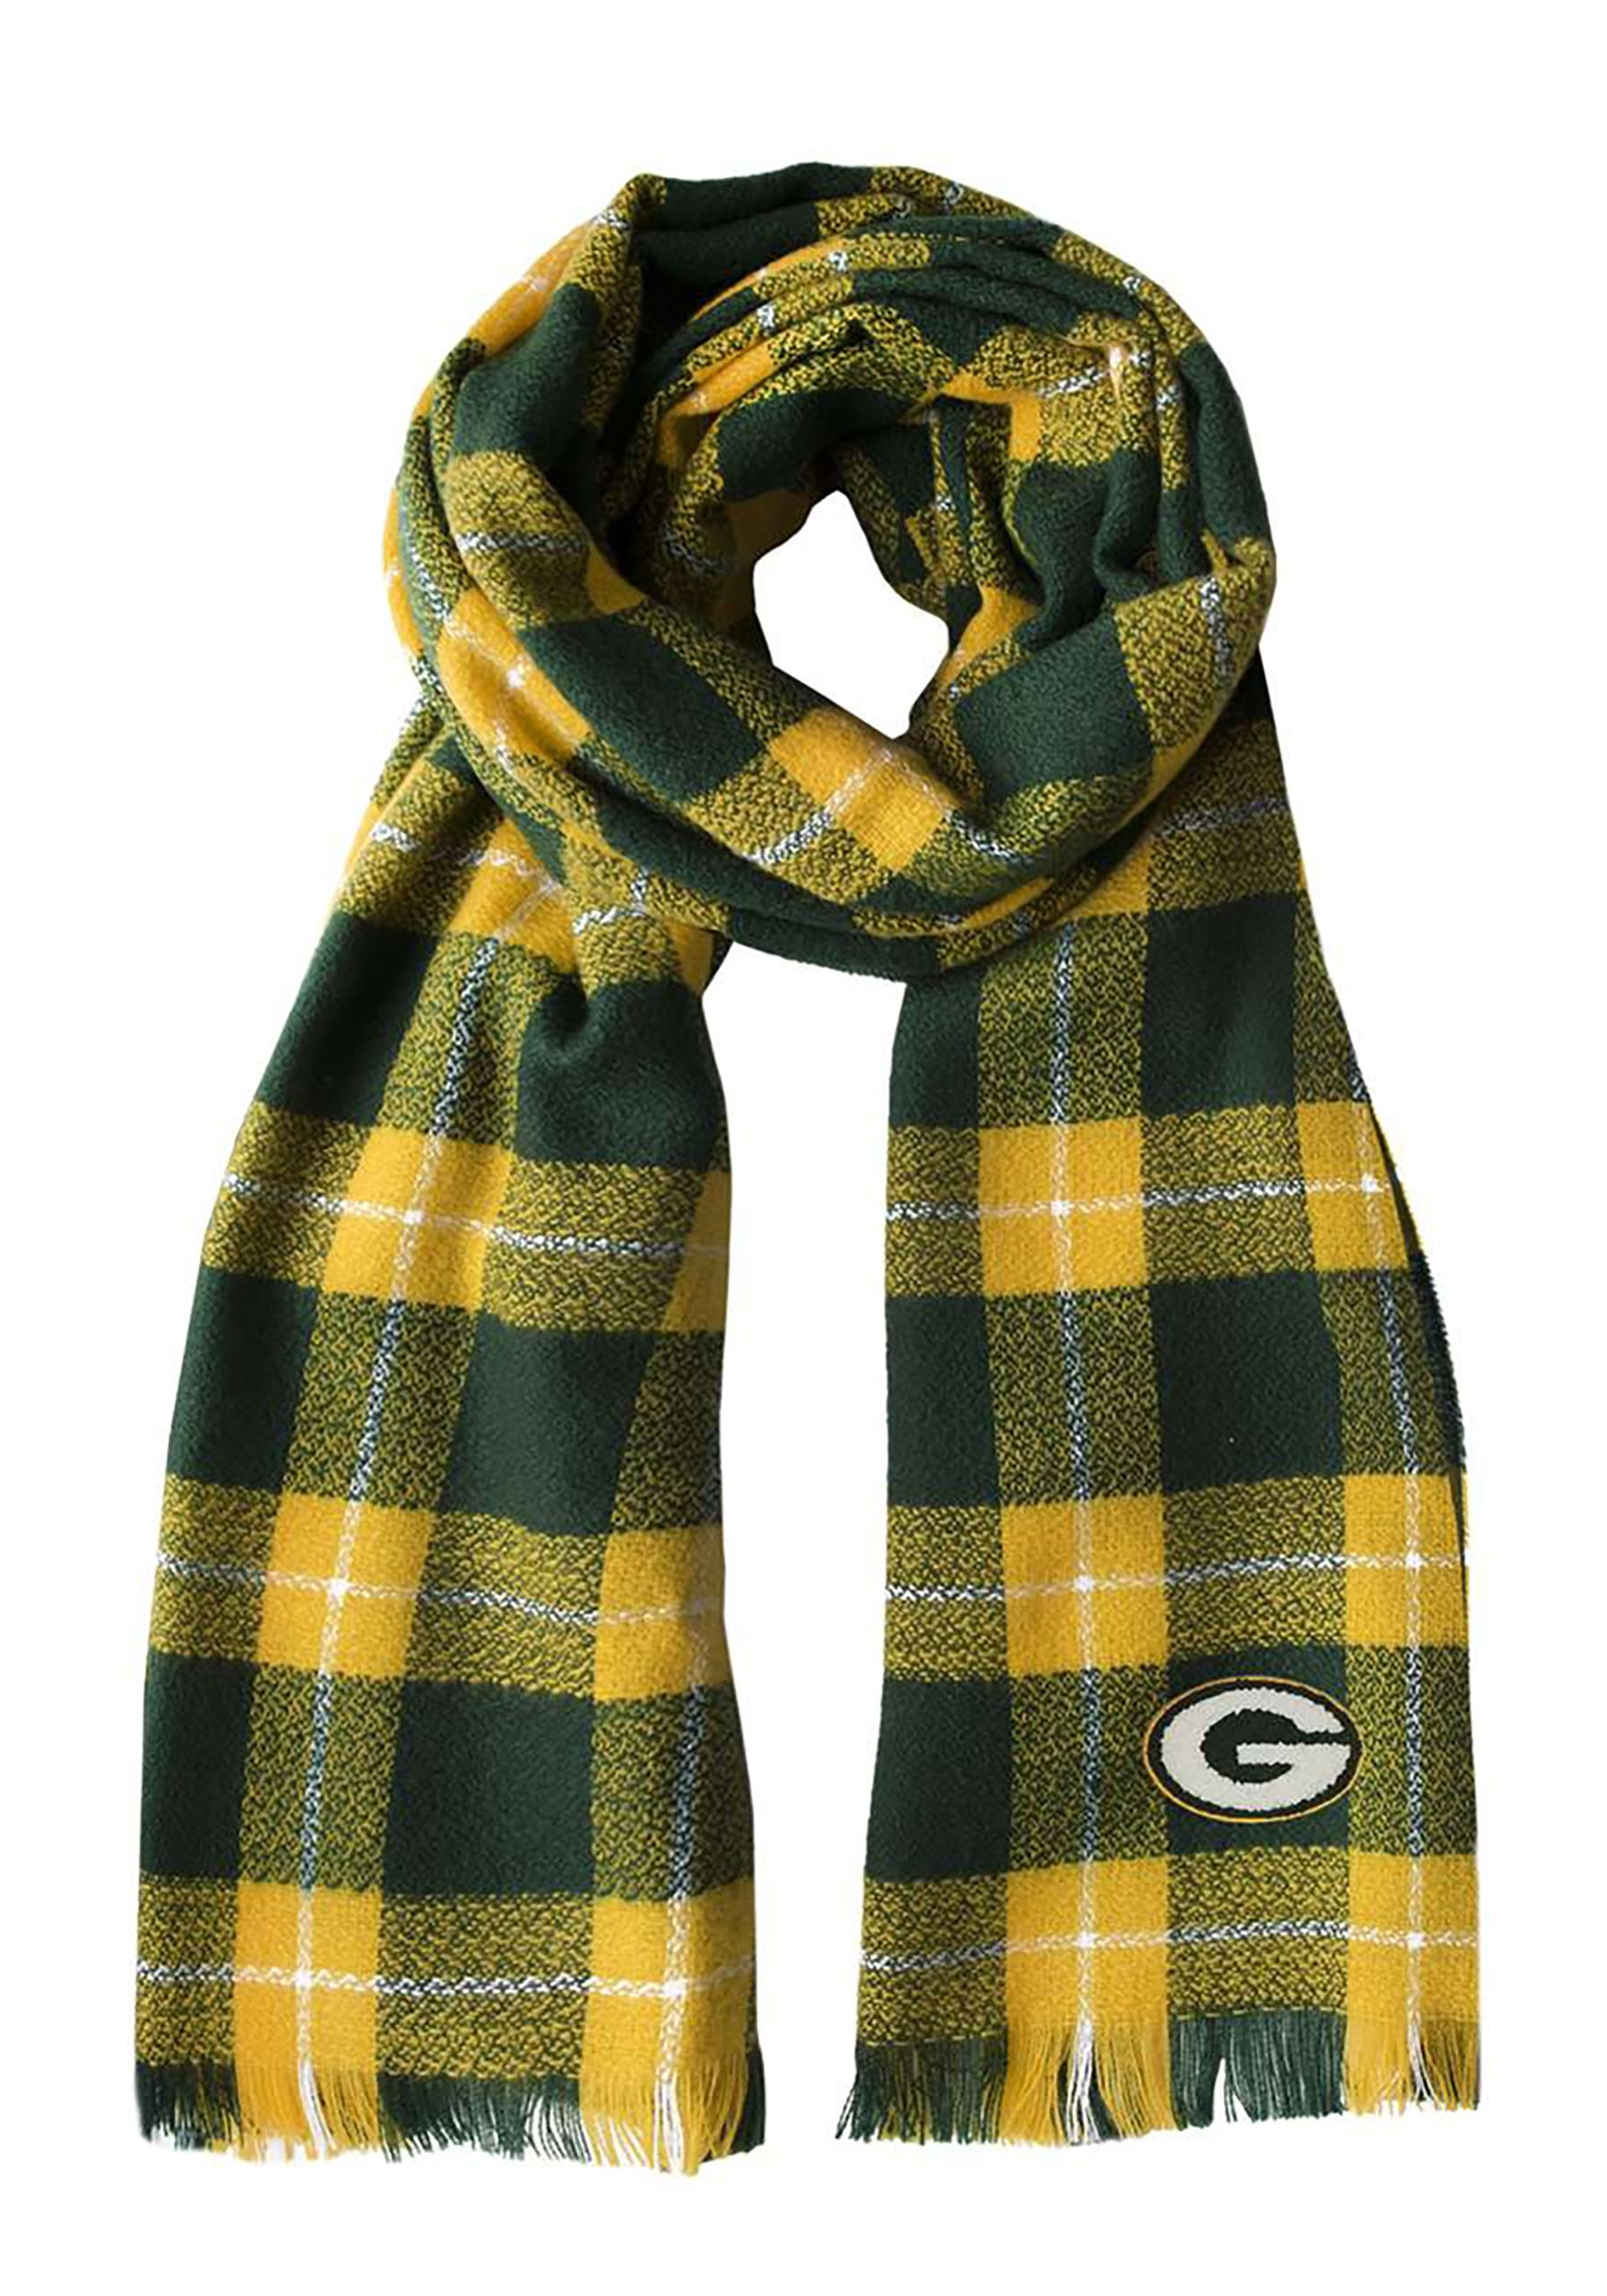 Comfy NFL Green Bay Packers Plaid Blanket Scarf